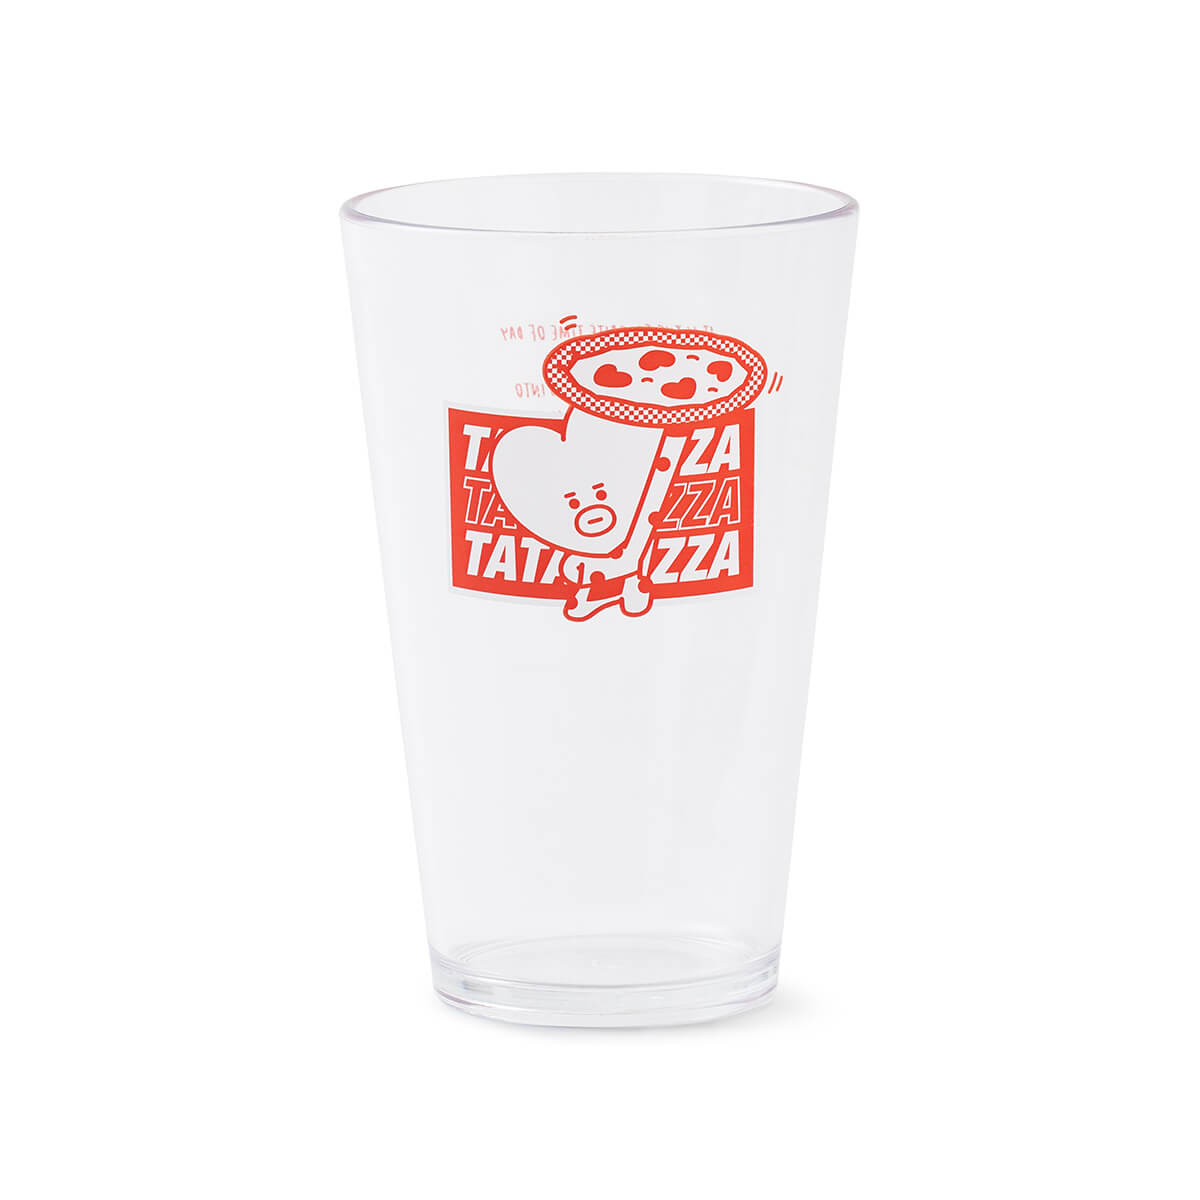 BT21 TATA Bite Shatter Proof Cup